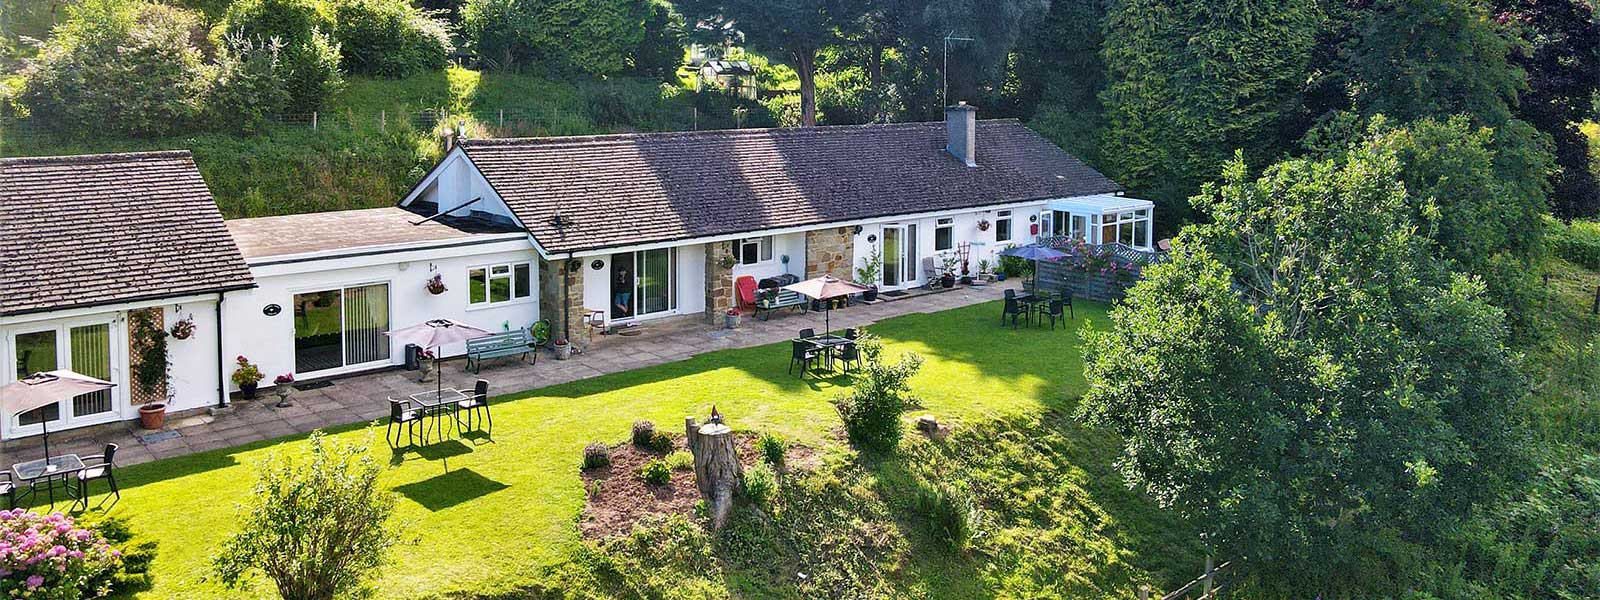 Paddocks Cottages  - Self catering holidays in Symonds Yat in the Wye Valley